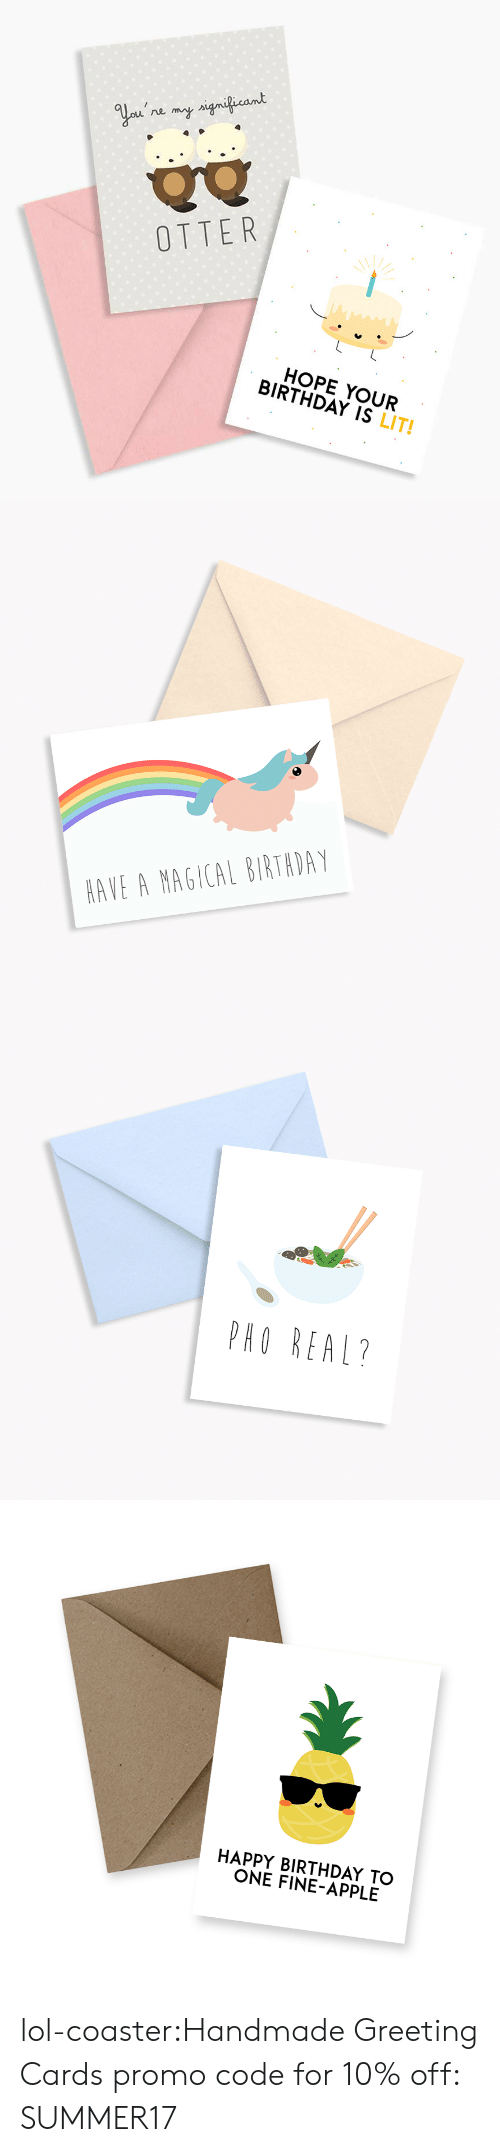 greeting cards: OTTER  HOPE YOUR  BIRTHDAY IS LIT!   AVE A MAGICAL BIRTADAY   PHO REAL?   HAPPY BIRTHDAY TO  ONE FINE-APPLE lol-coaster:Handmade Greeting Cards  promo code for 10% off: SUMMER17